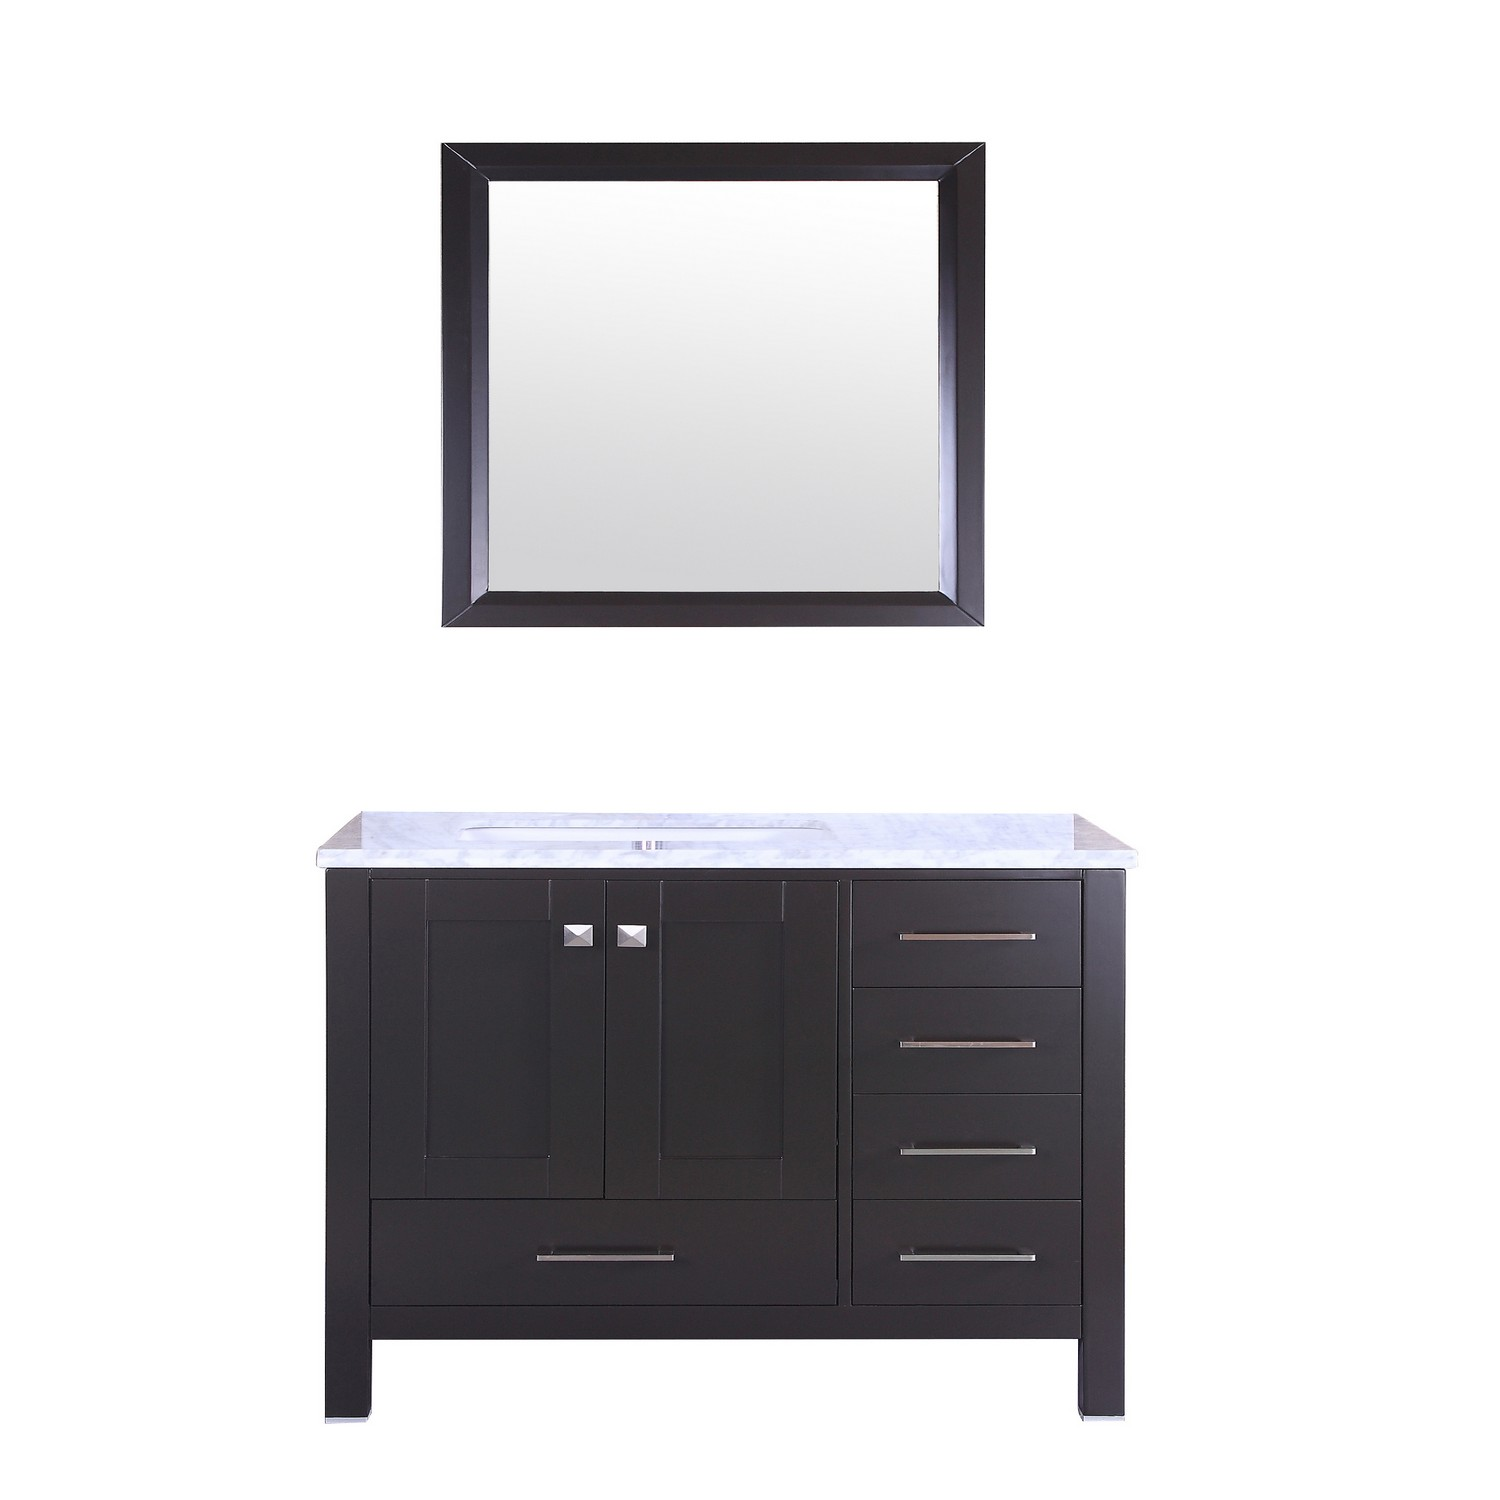 "EVVN412 36ES A Main - Eviva Aberdeen 36"" Transitional Espresso Bathroom Vanity with White Carrera Countertop"